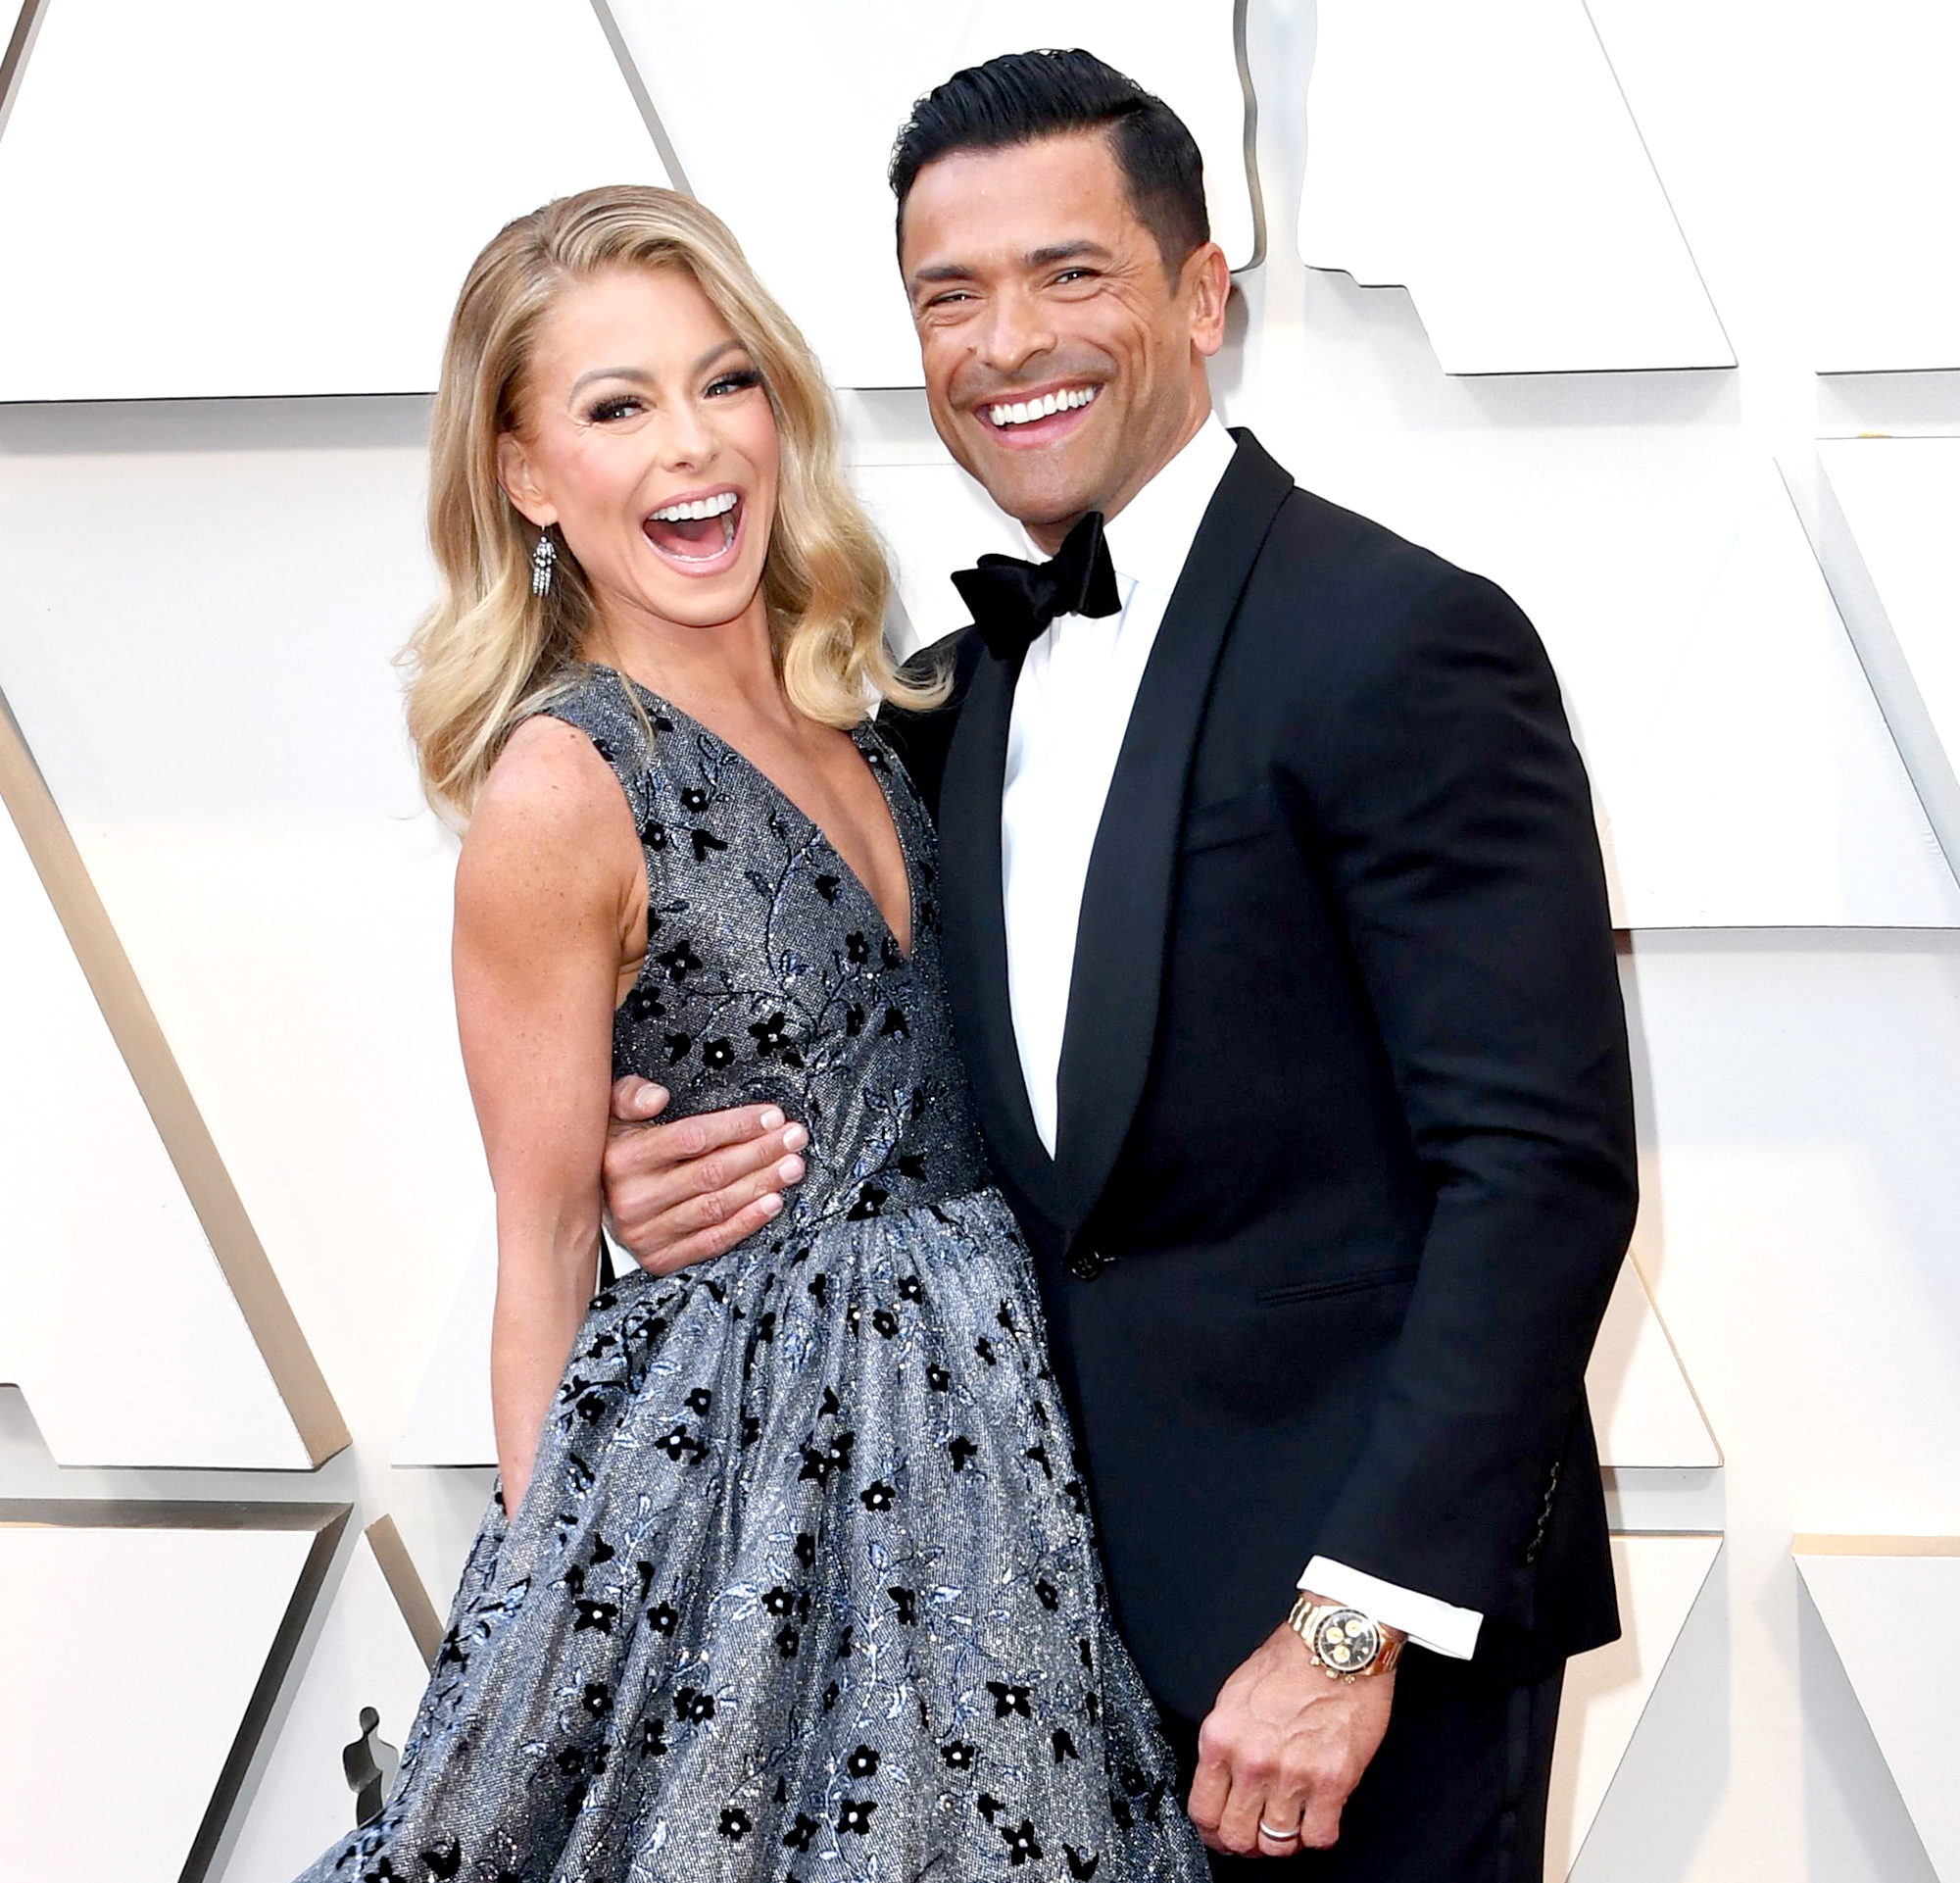 Kelly-Ripa-Mark-Consuelos-4th-Child - Kelly Ripa and Mark Consuelos arrive for the 91st Annual Academy Awards at the Dolby Theatre in Hollywood, California on February 24, 2019.